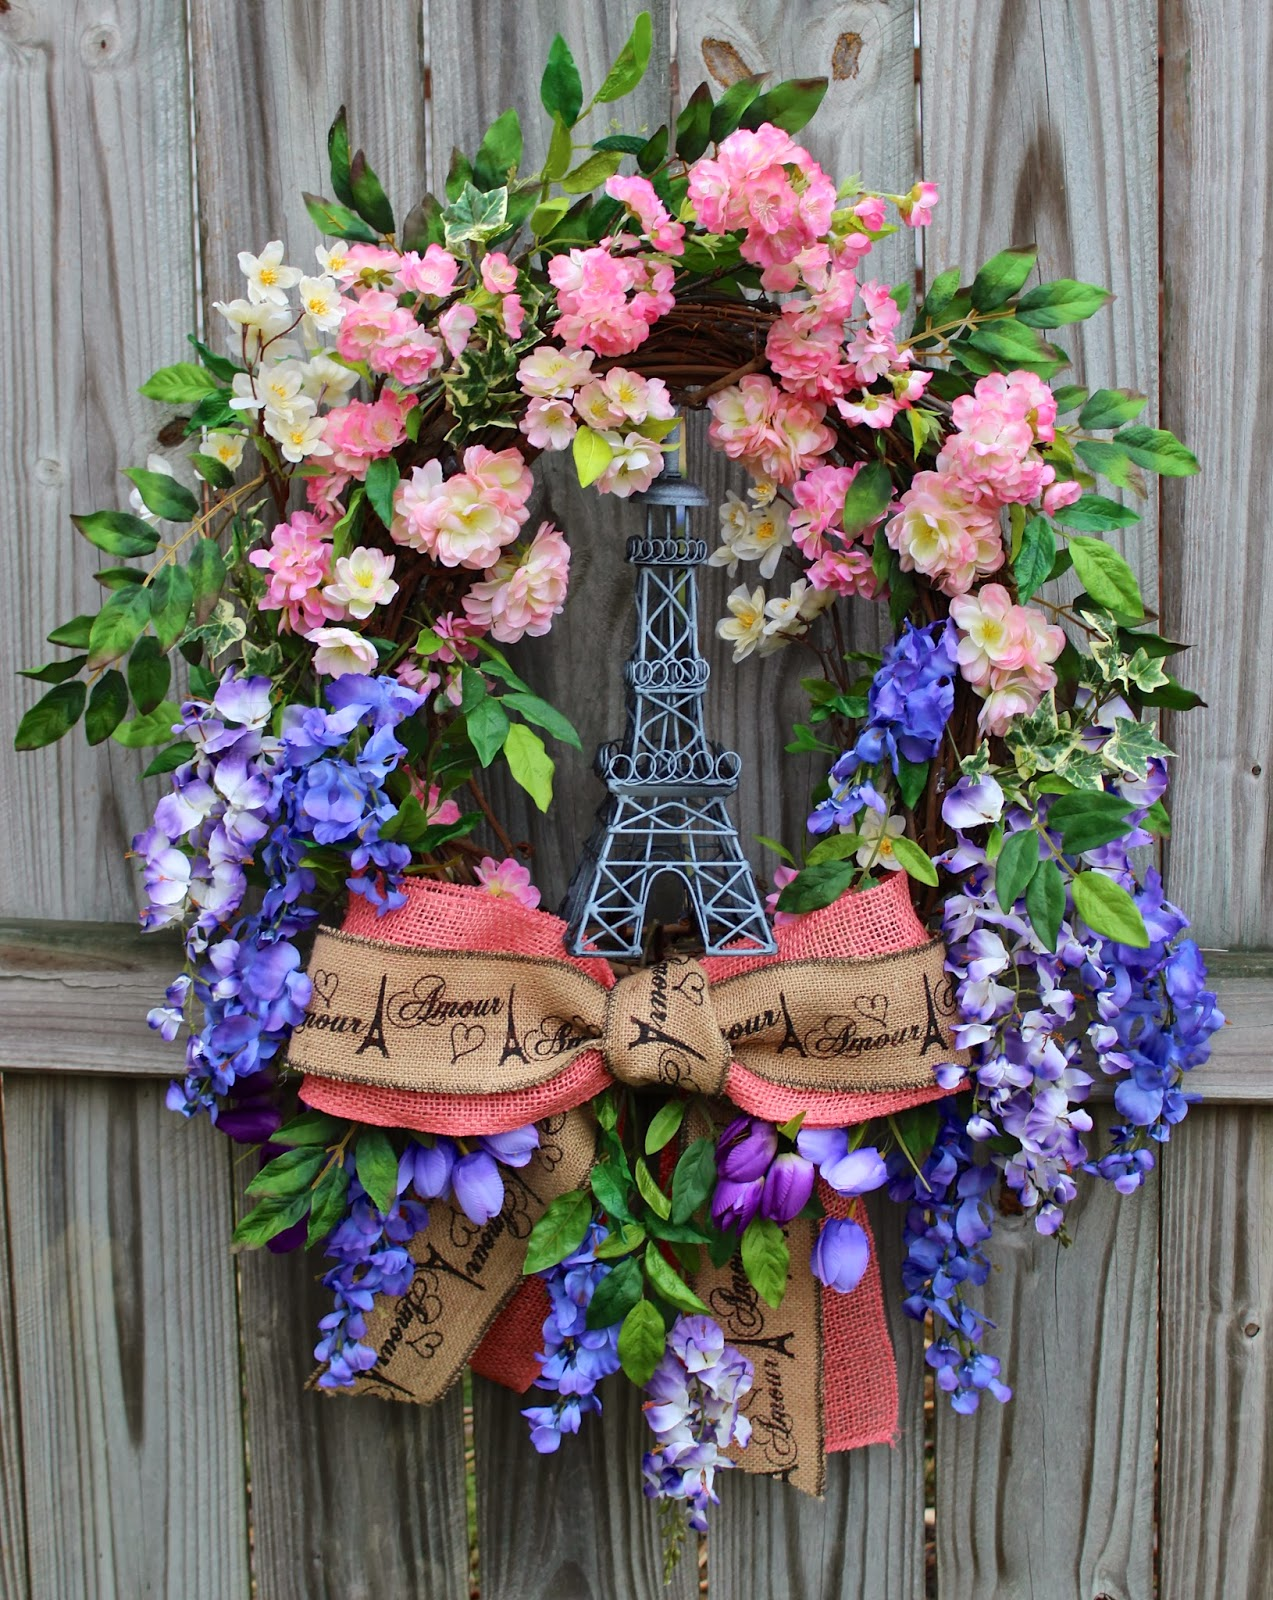 Paris in Spring Wisteria and Cherry Blossom Wreath, XXXLarge, Eiffel Tower